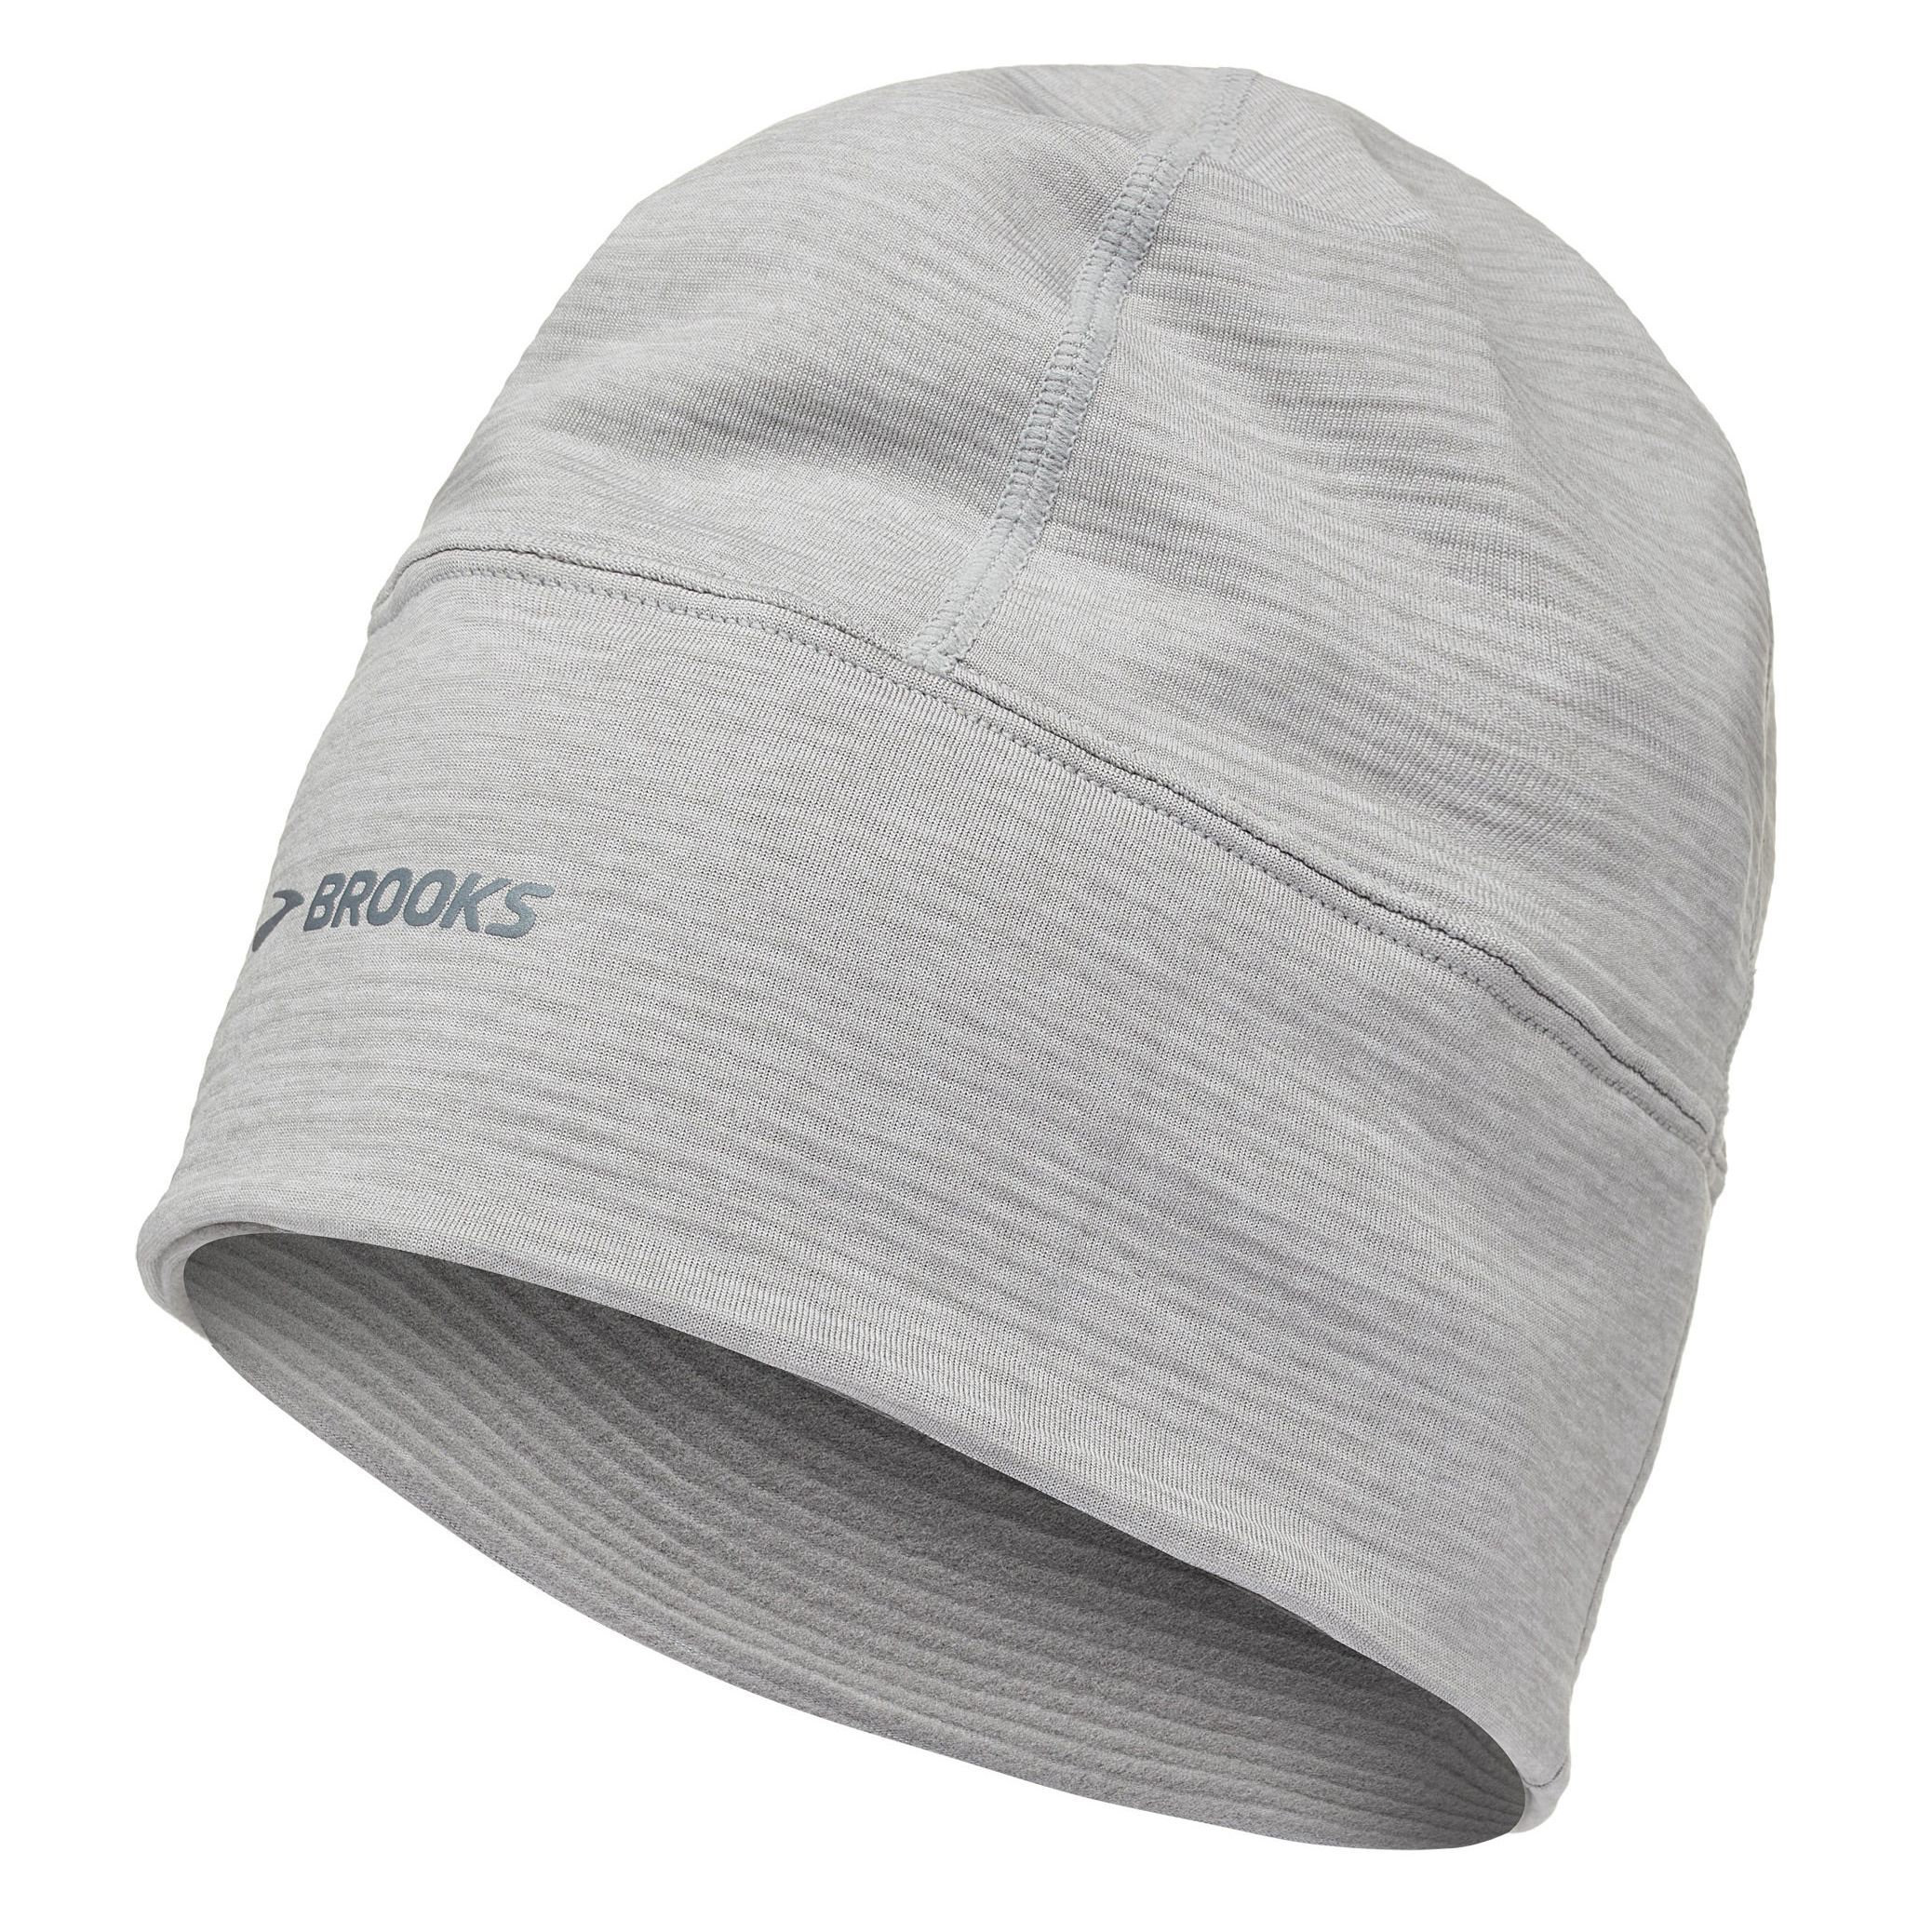 EXTRA WARM UNISEX THERMA-TEC INSULATED BEANIE HAT